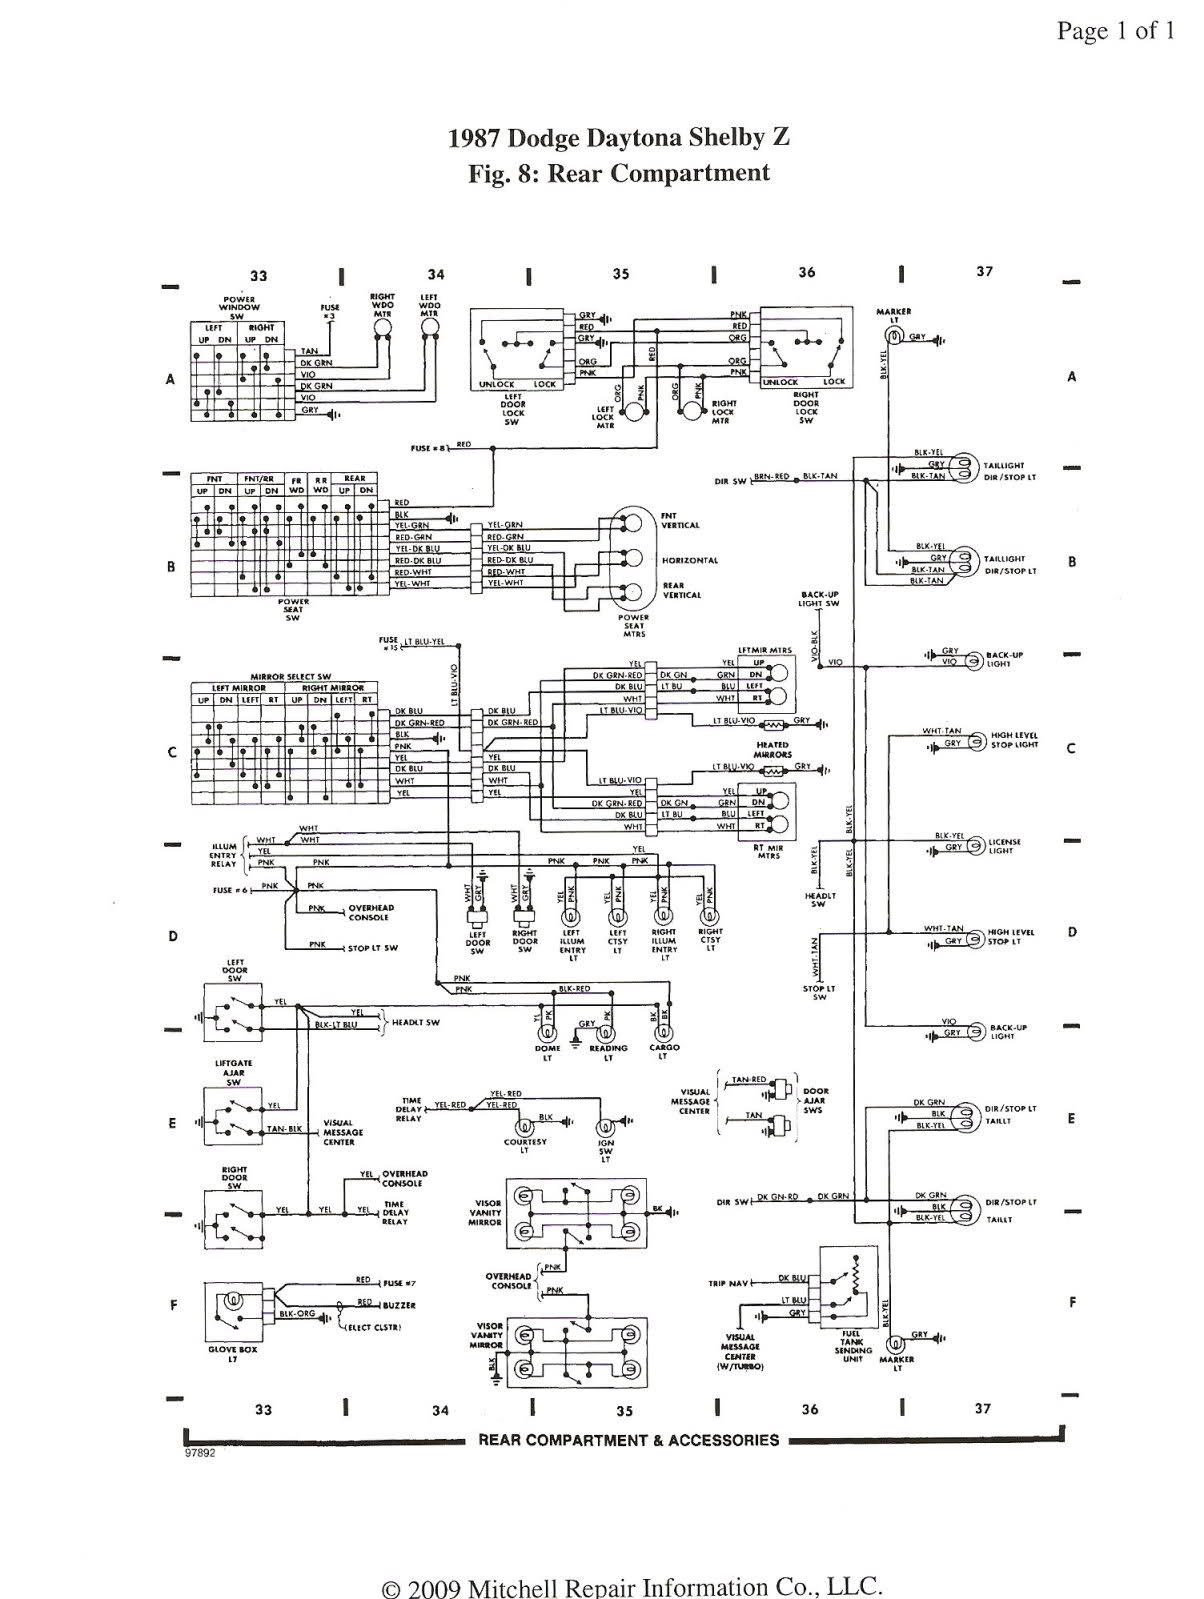 Free Auto Wiring Diagram  1987 Dodge Daytona Shelby Z Rear Compartment